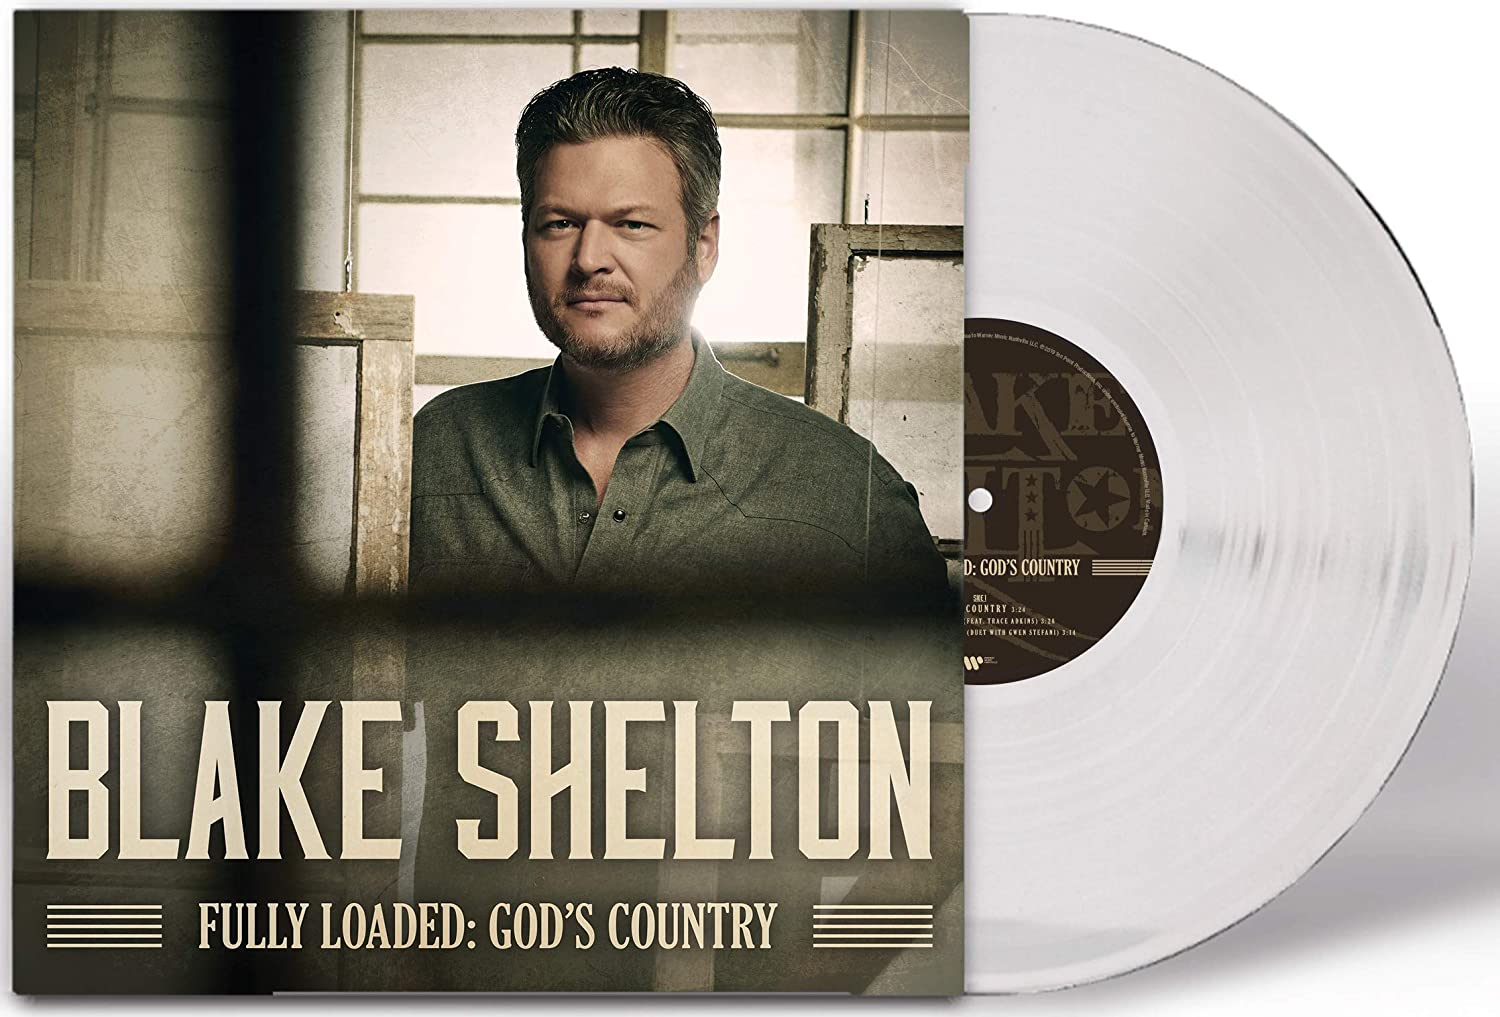 Blake Shelton - Fully Loaded: God's Country (Exclusive Clear Vinyl)